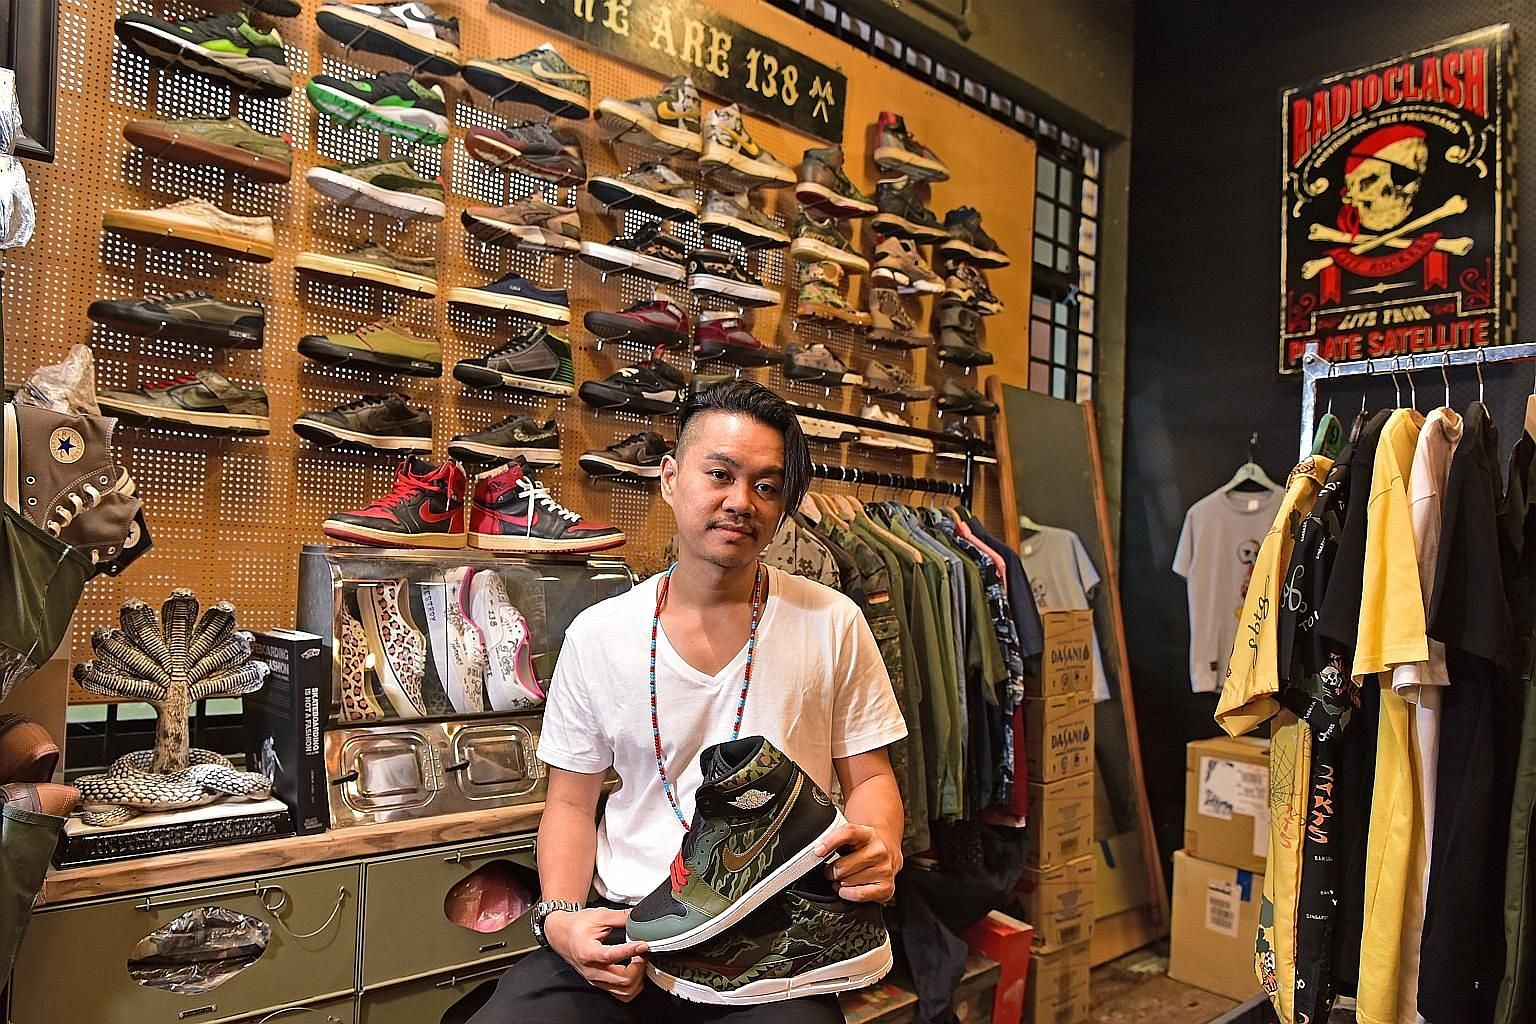 Visitors looking for good deals at last year's Sole Superior. This year's event will take place at Pasir Panjang Power Station from Oct 26 to Oct 28. Streetwear artist Mark Ong of sneaker label SBTG recommends knowing the history of what one is buyin